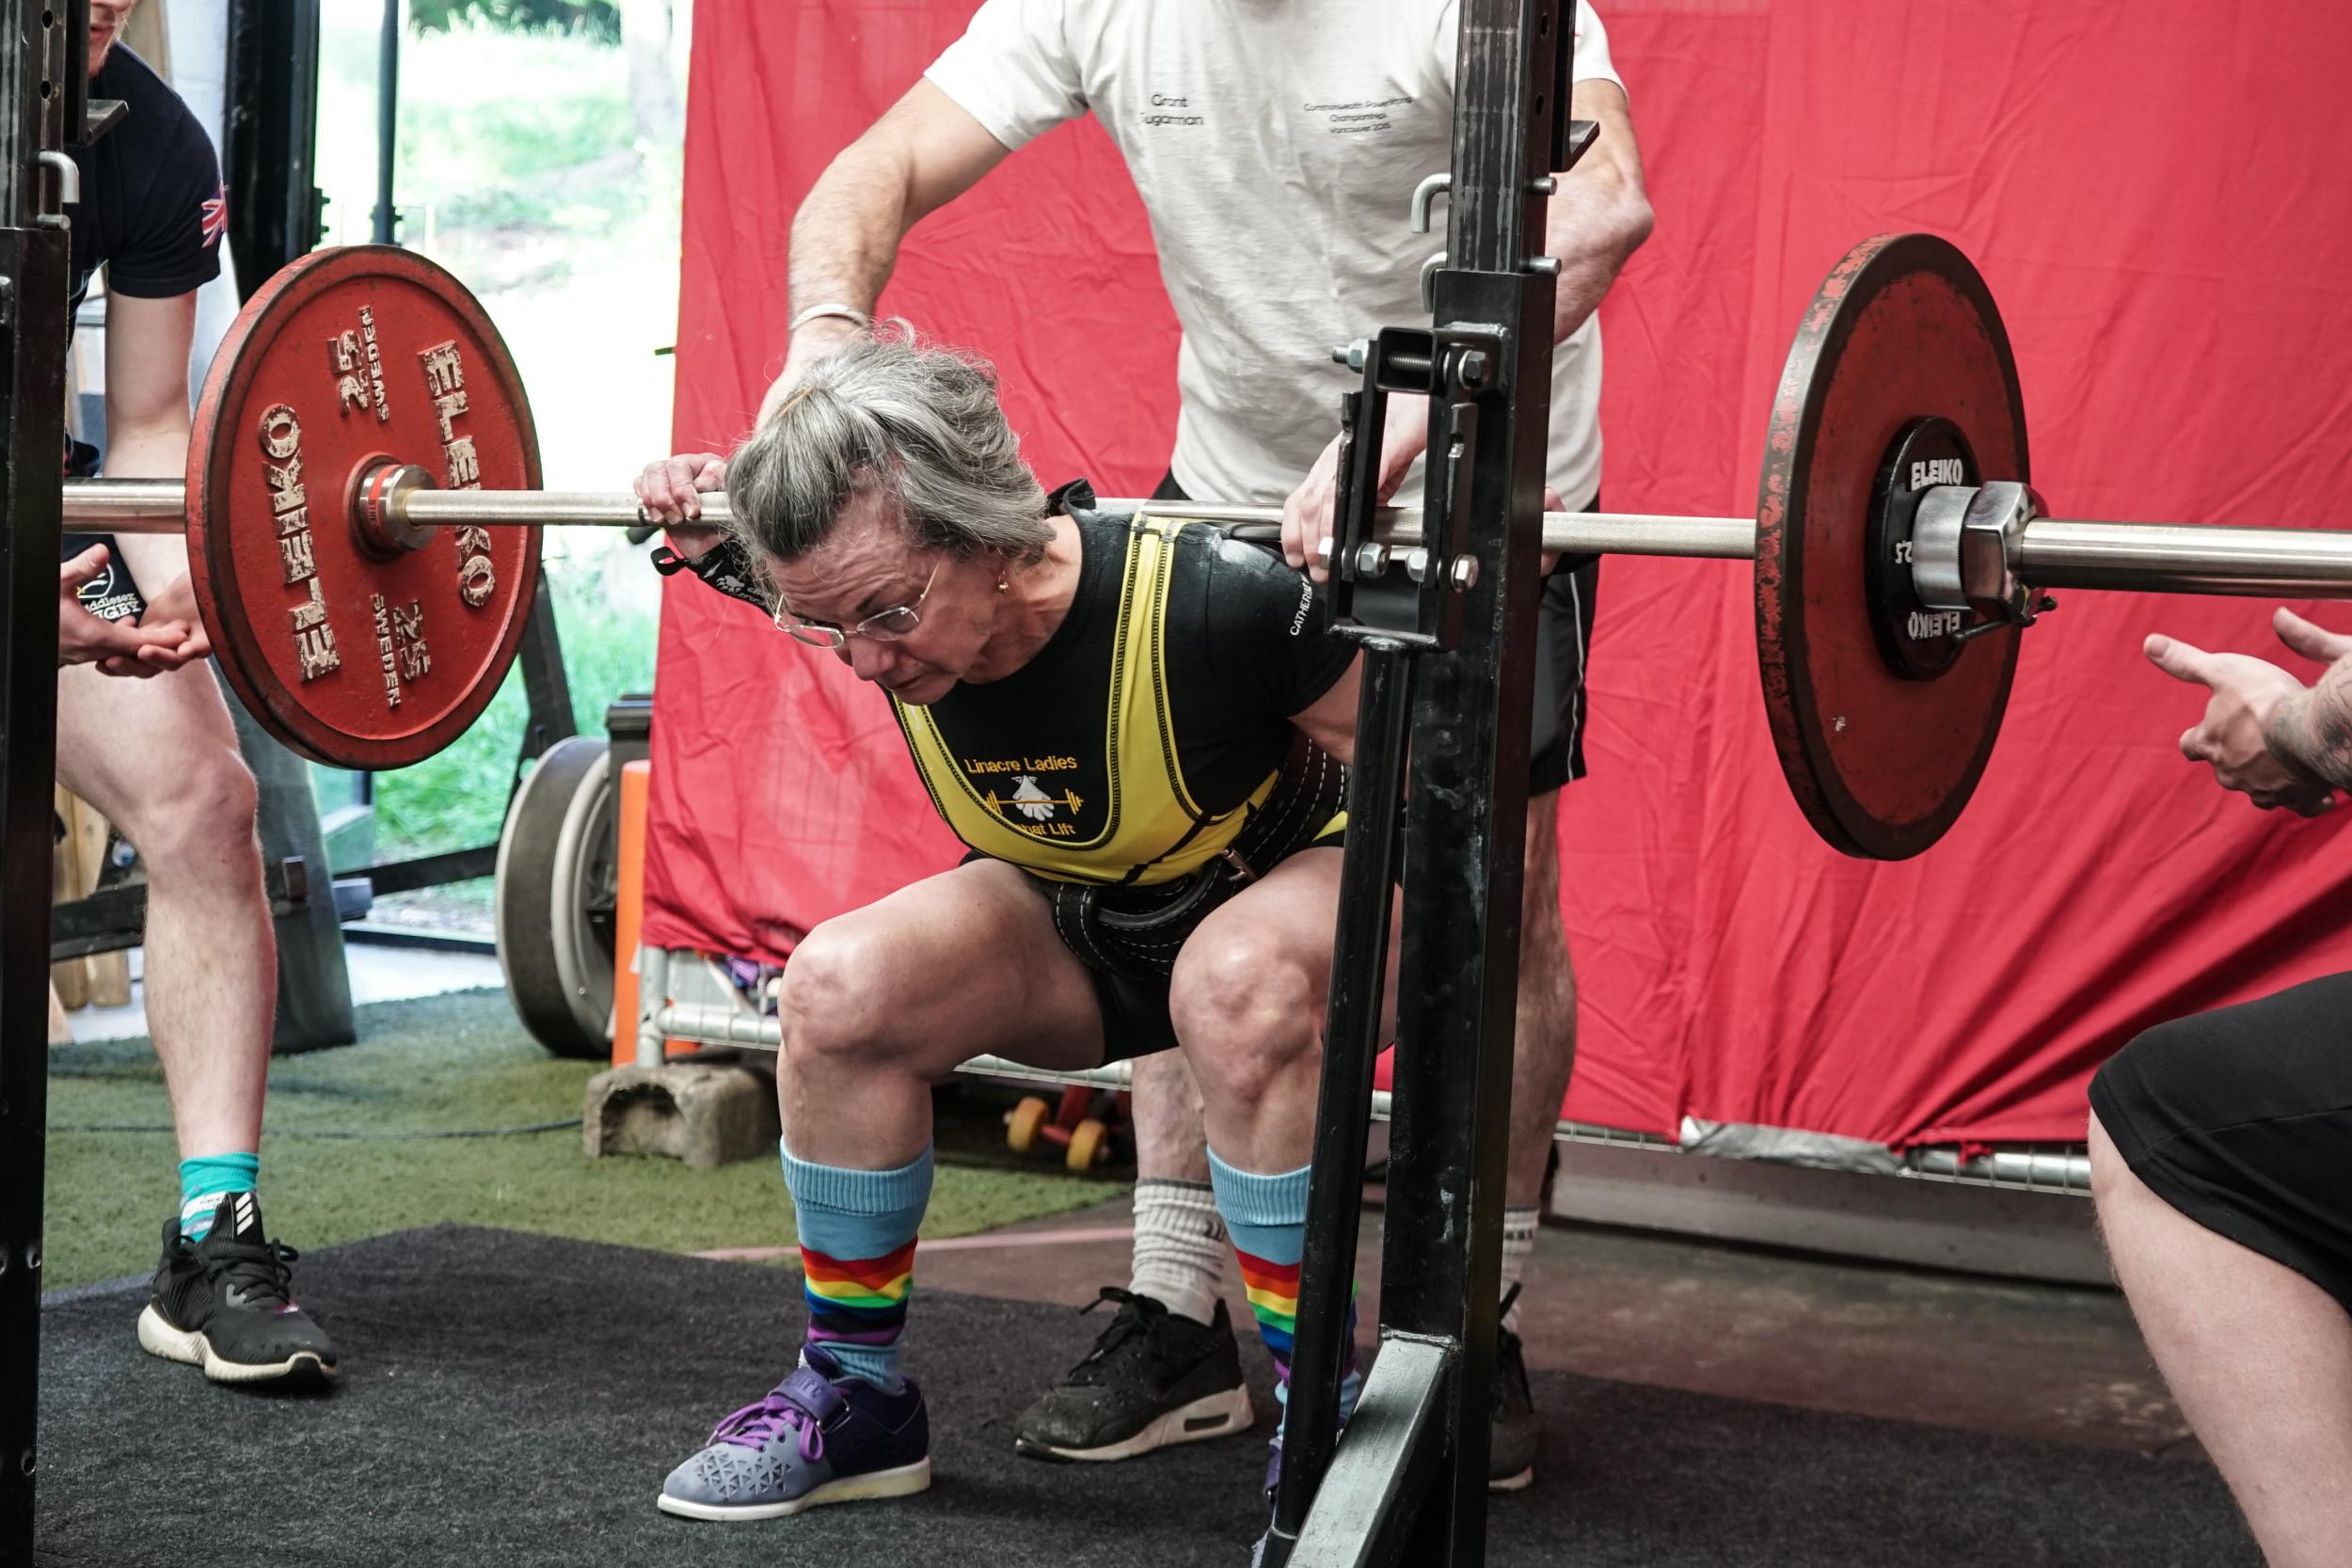 catherine-squat-6-0.jpg